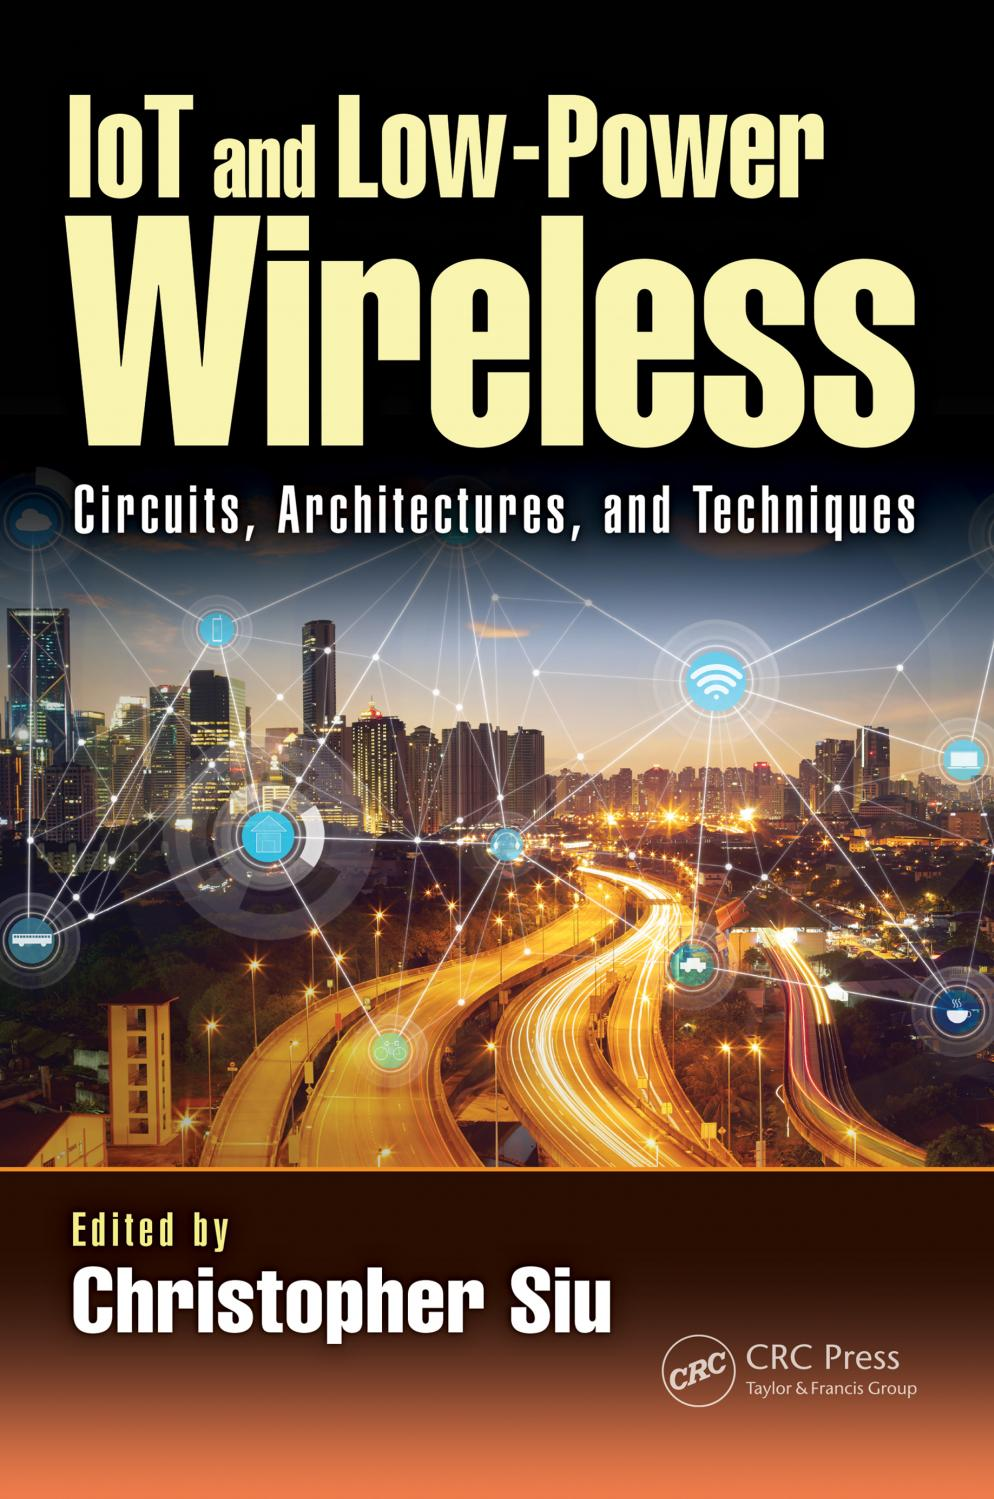 Marvelous Iot And Low Power Wireless Circuits Architectures And Techniques Wiring Cloud Lukepaidewilluminateatxorg